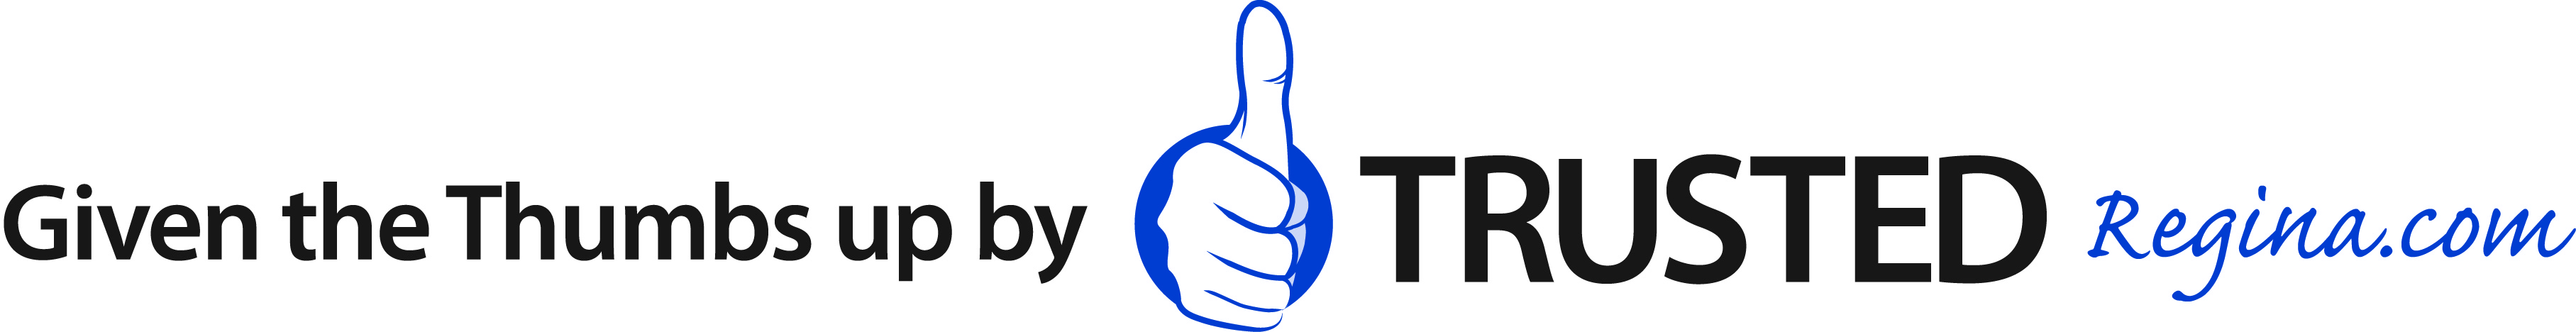 Given the Thumbs up by TRUSTEDRegina.com